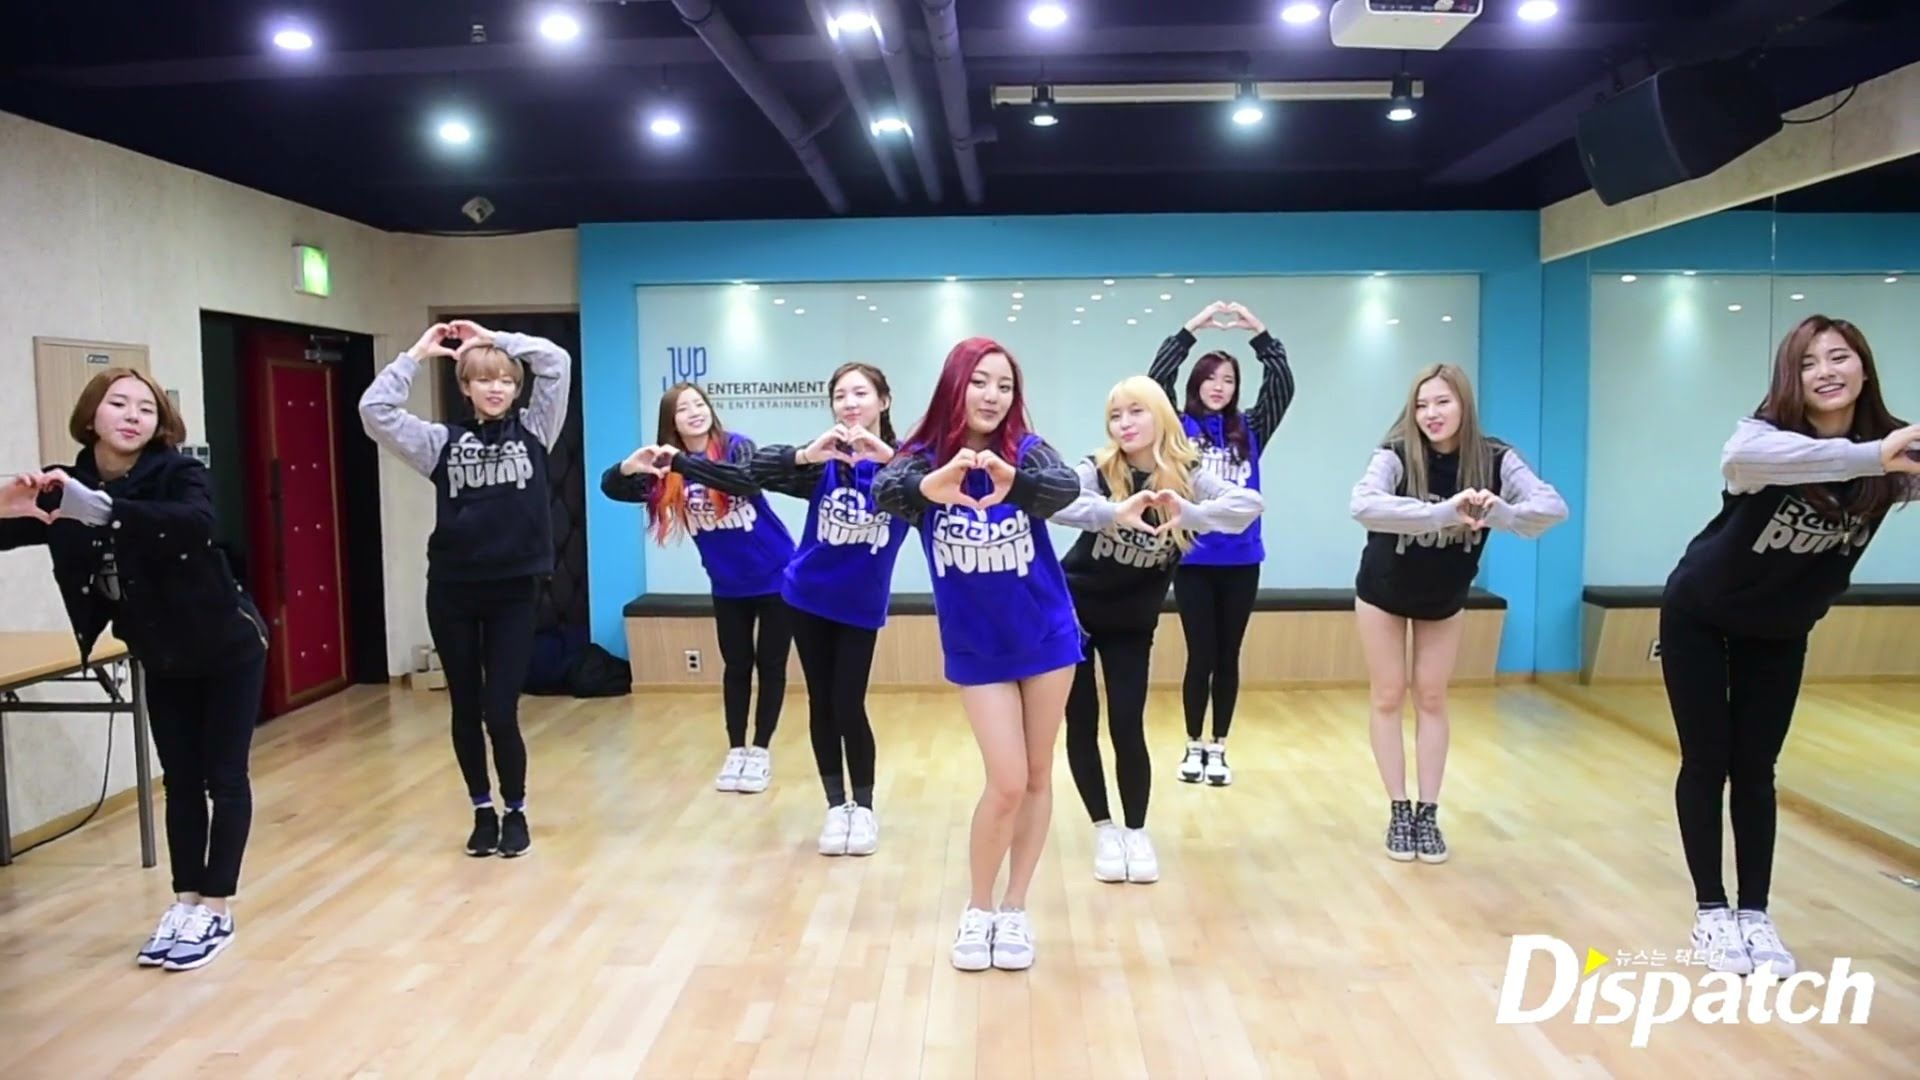 Twice ohh ahh dance tutorial by dispatch dance k pop twice ohh ahh dance tutorial by dispatch baditri Images